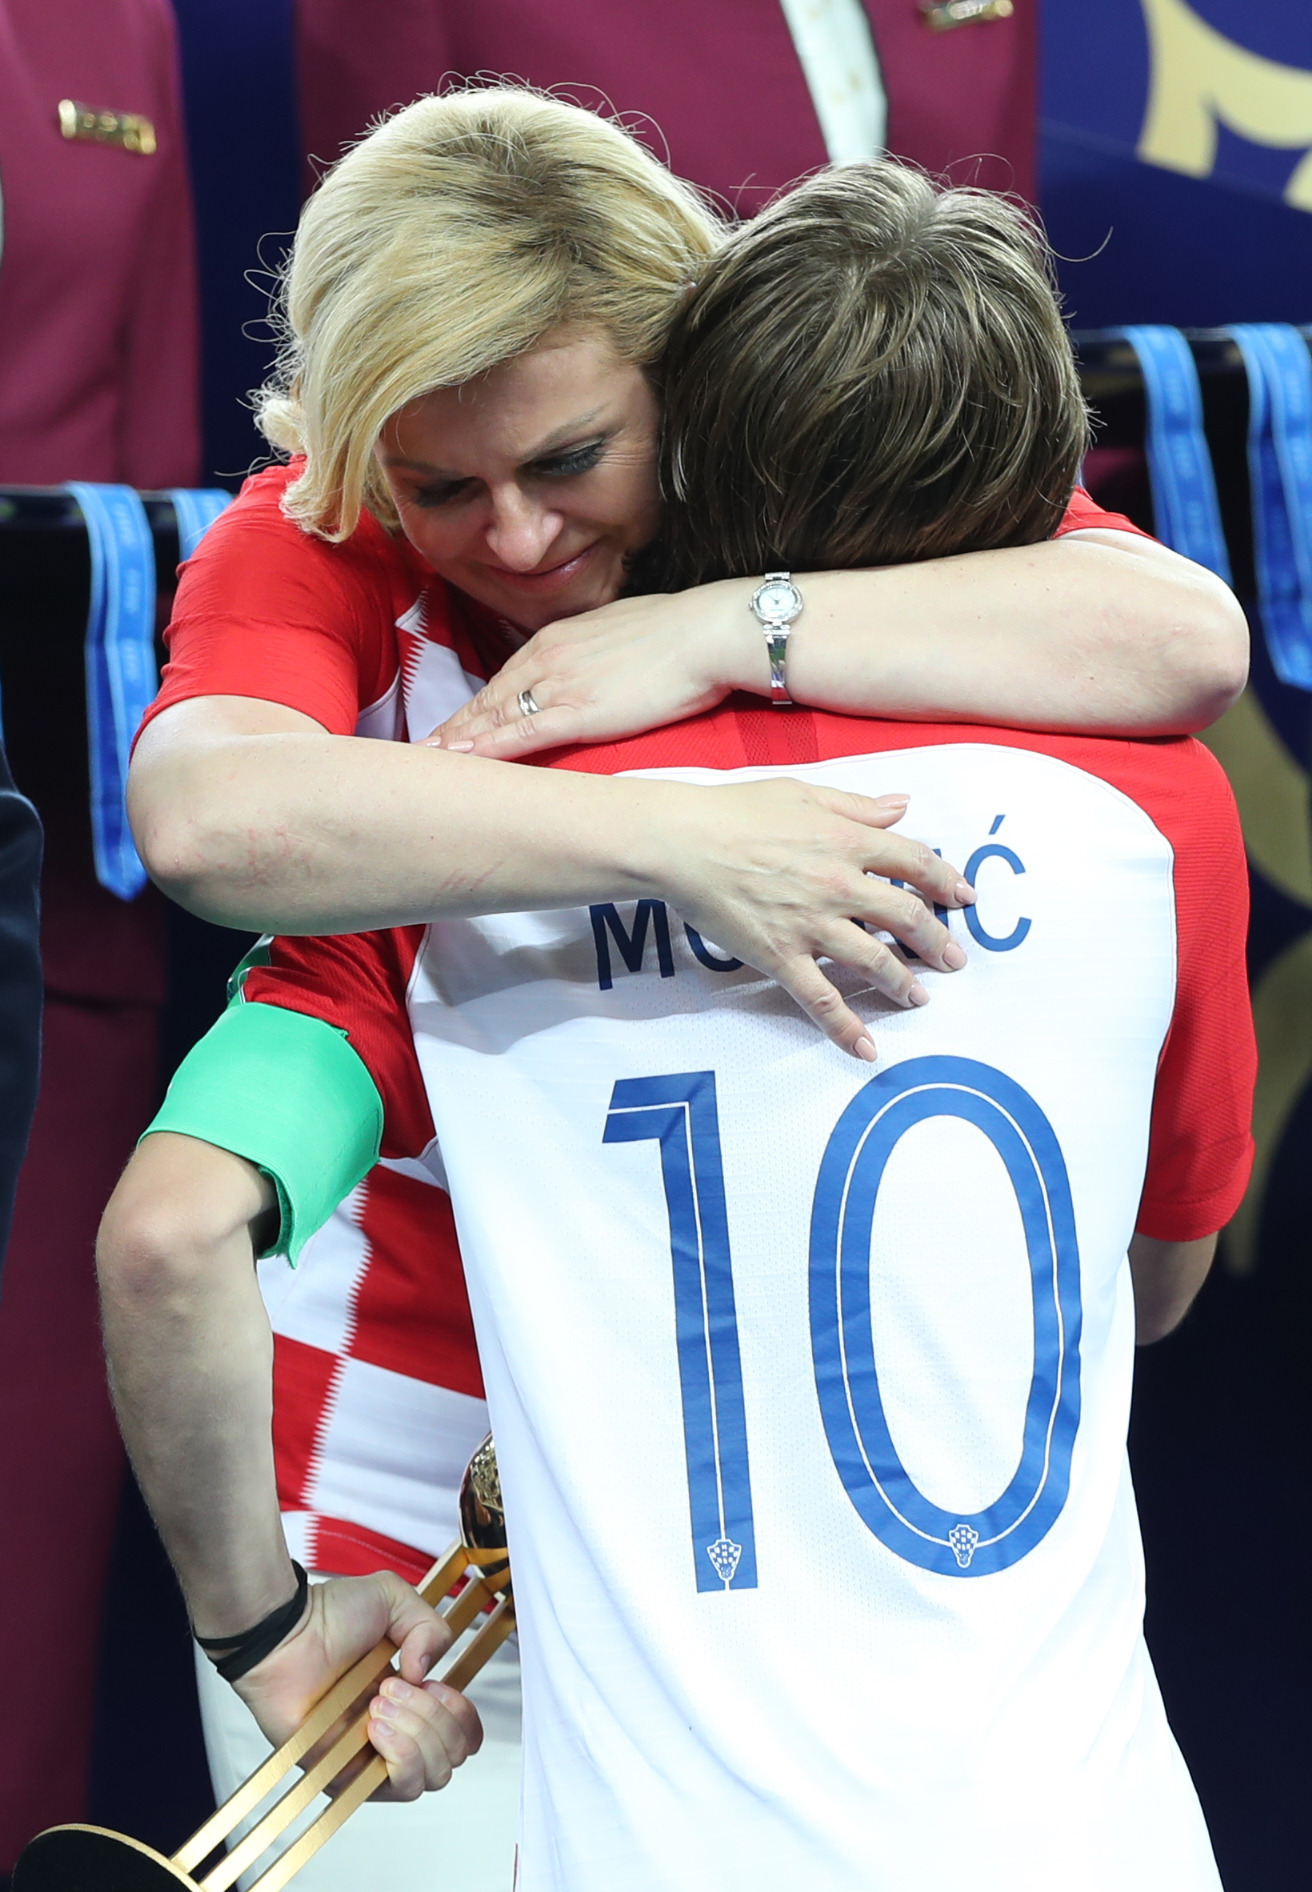 Croatia President Wins Everyones Heart With Her Huge Support For The Team PA 37588452